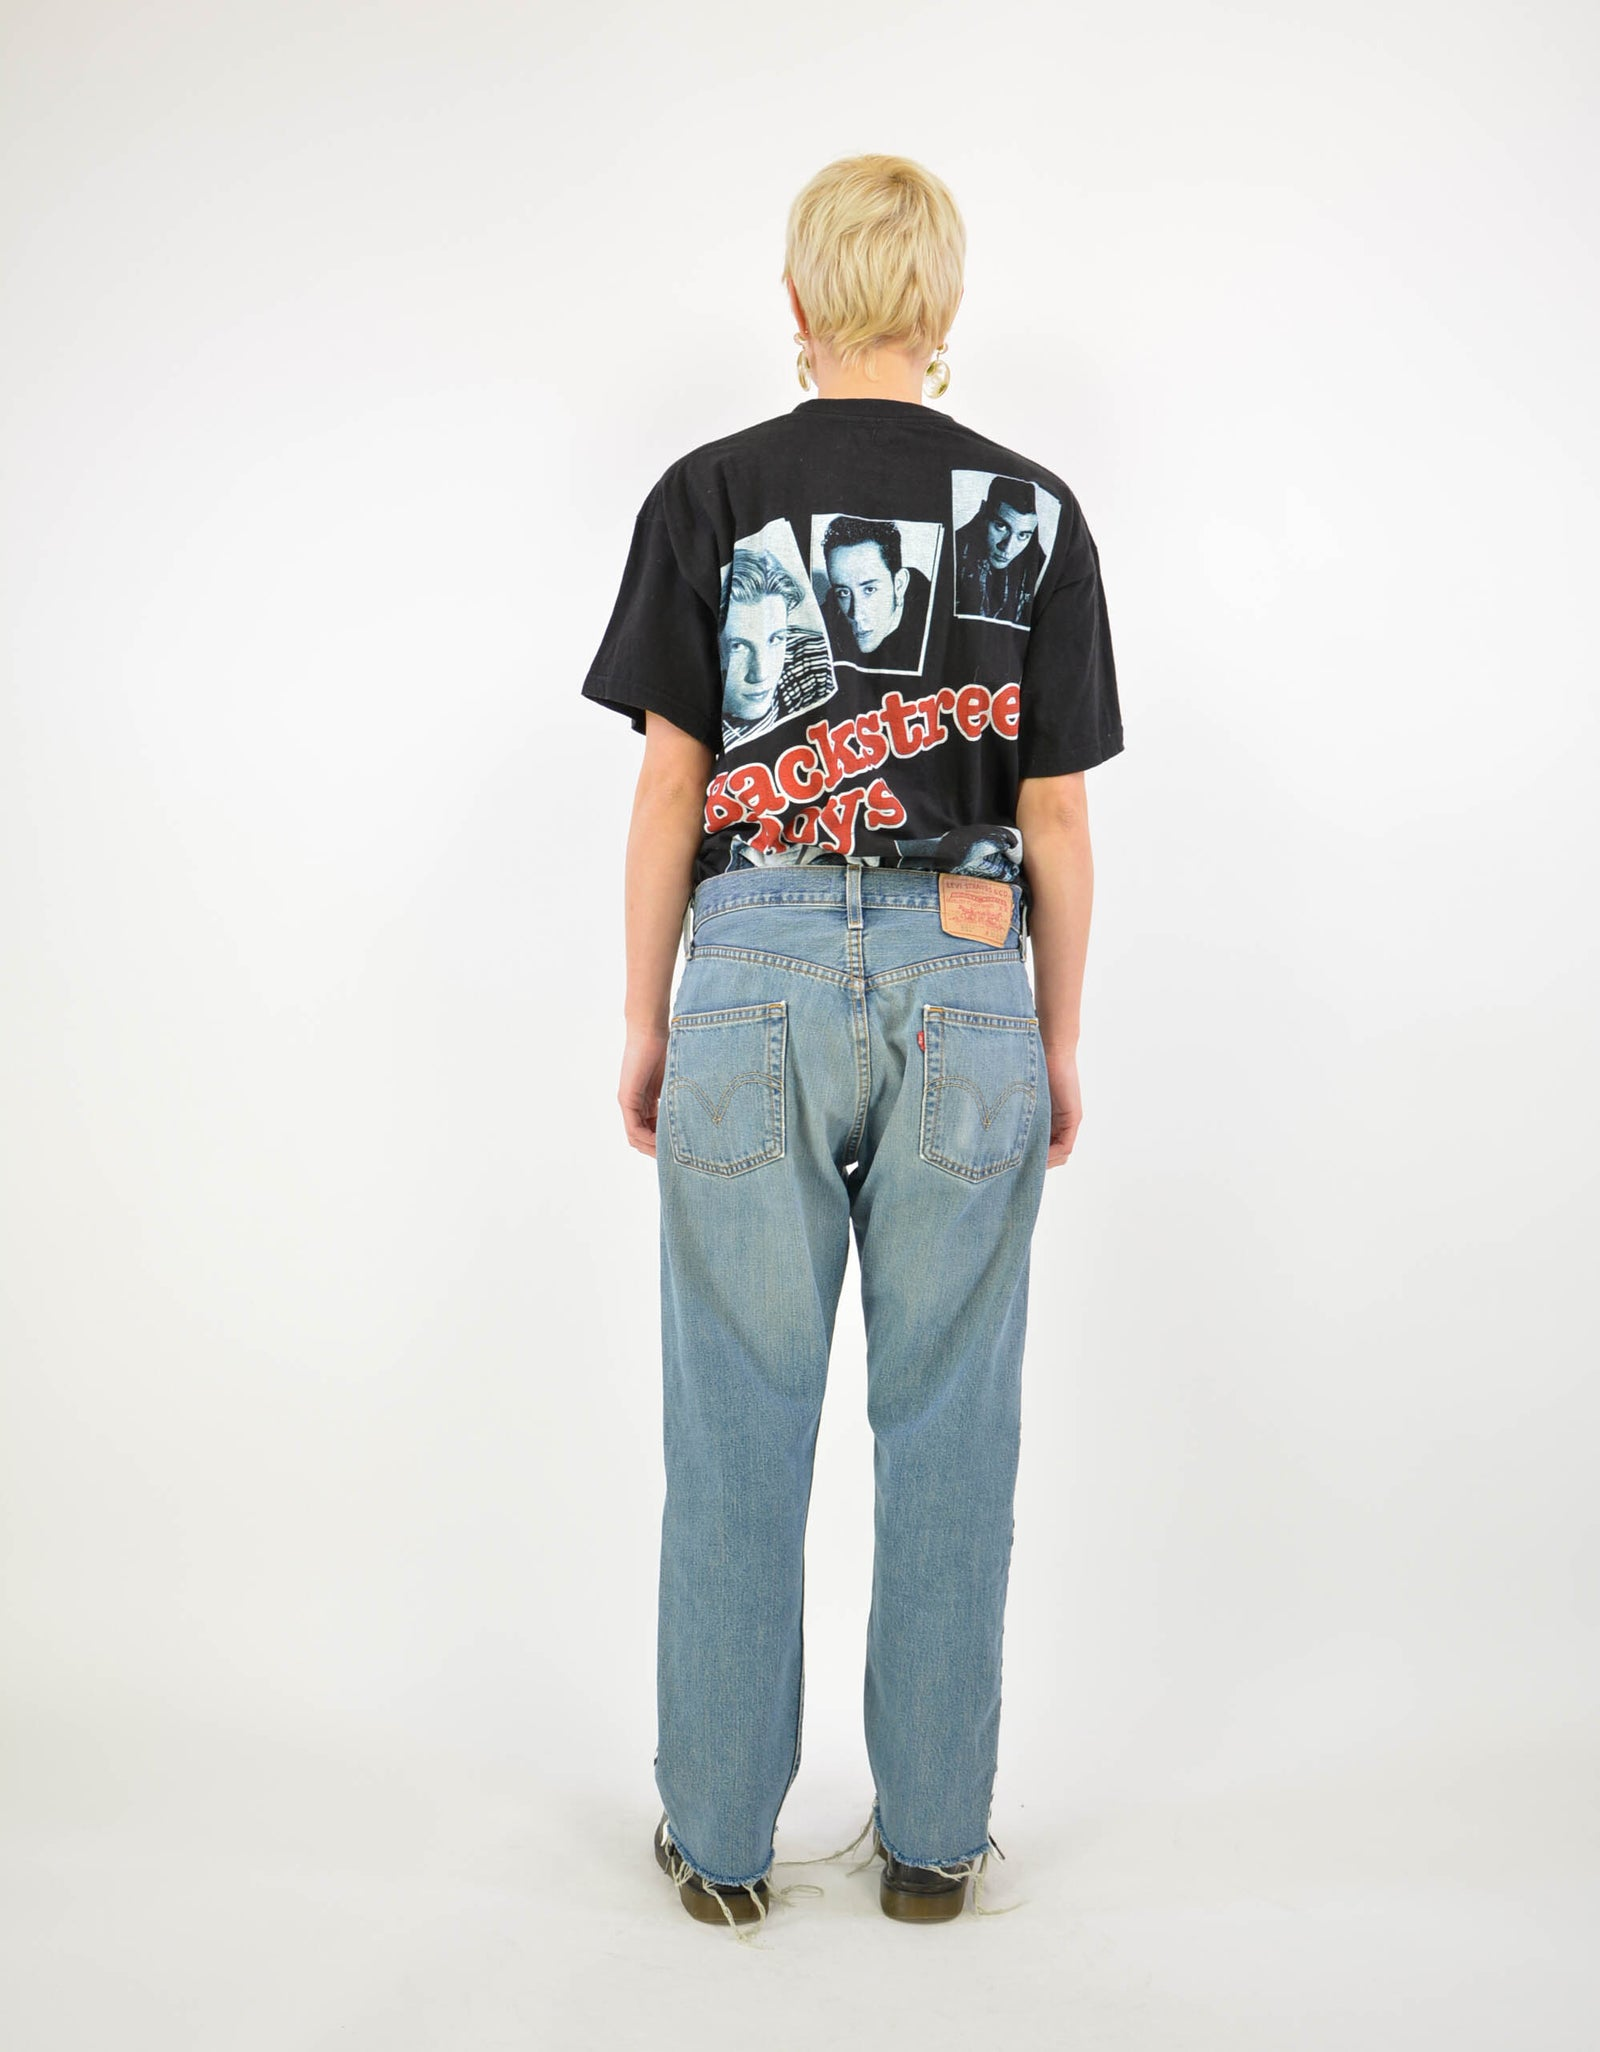 (RE)CO Jeans no 9S30 - PICKNWEIGHT - VINTAGE KILO STORE